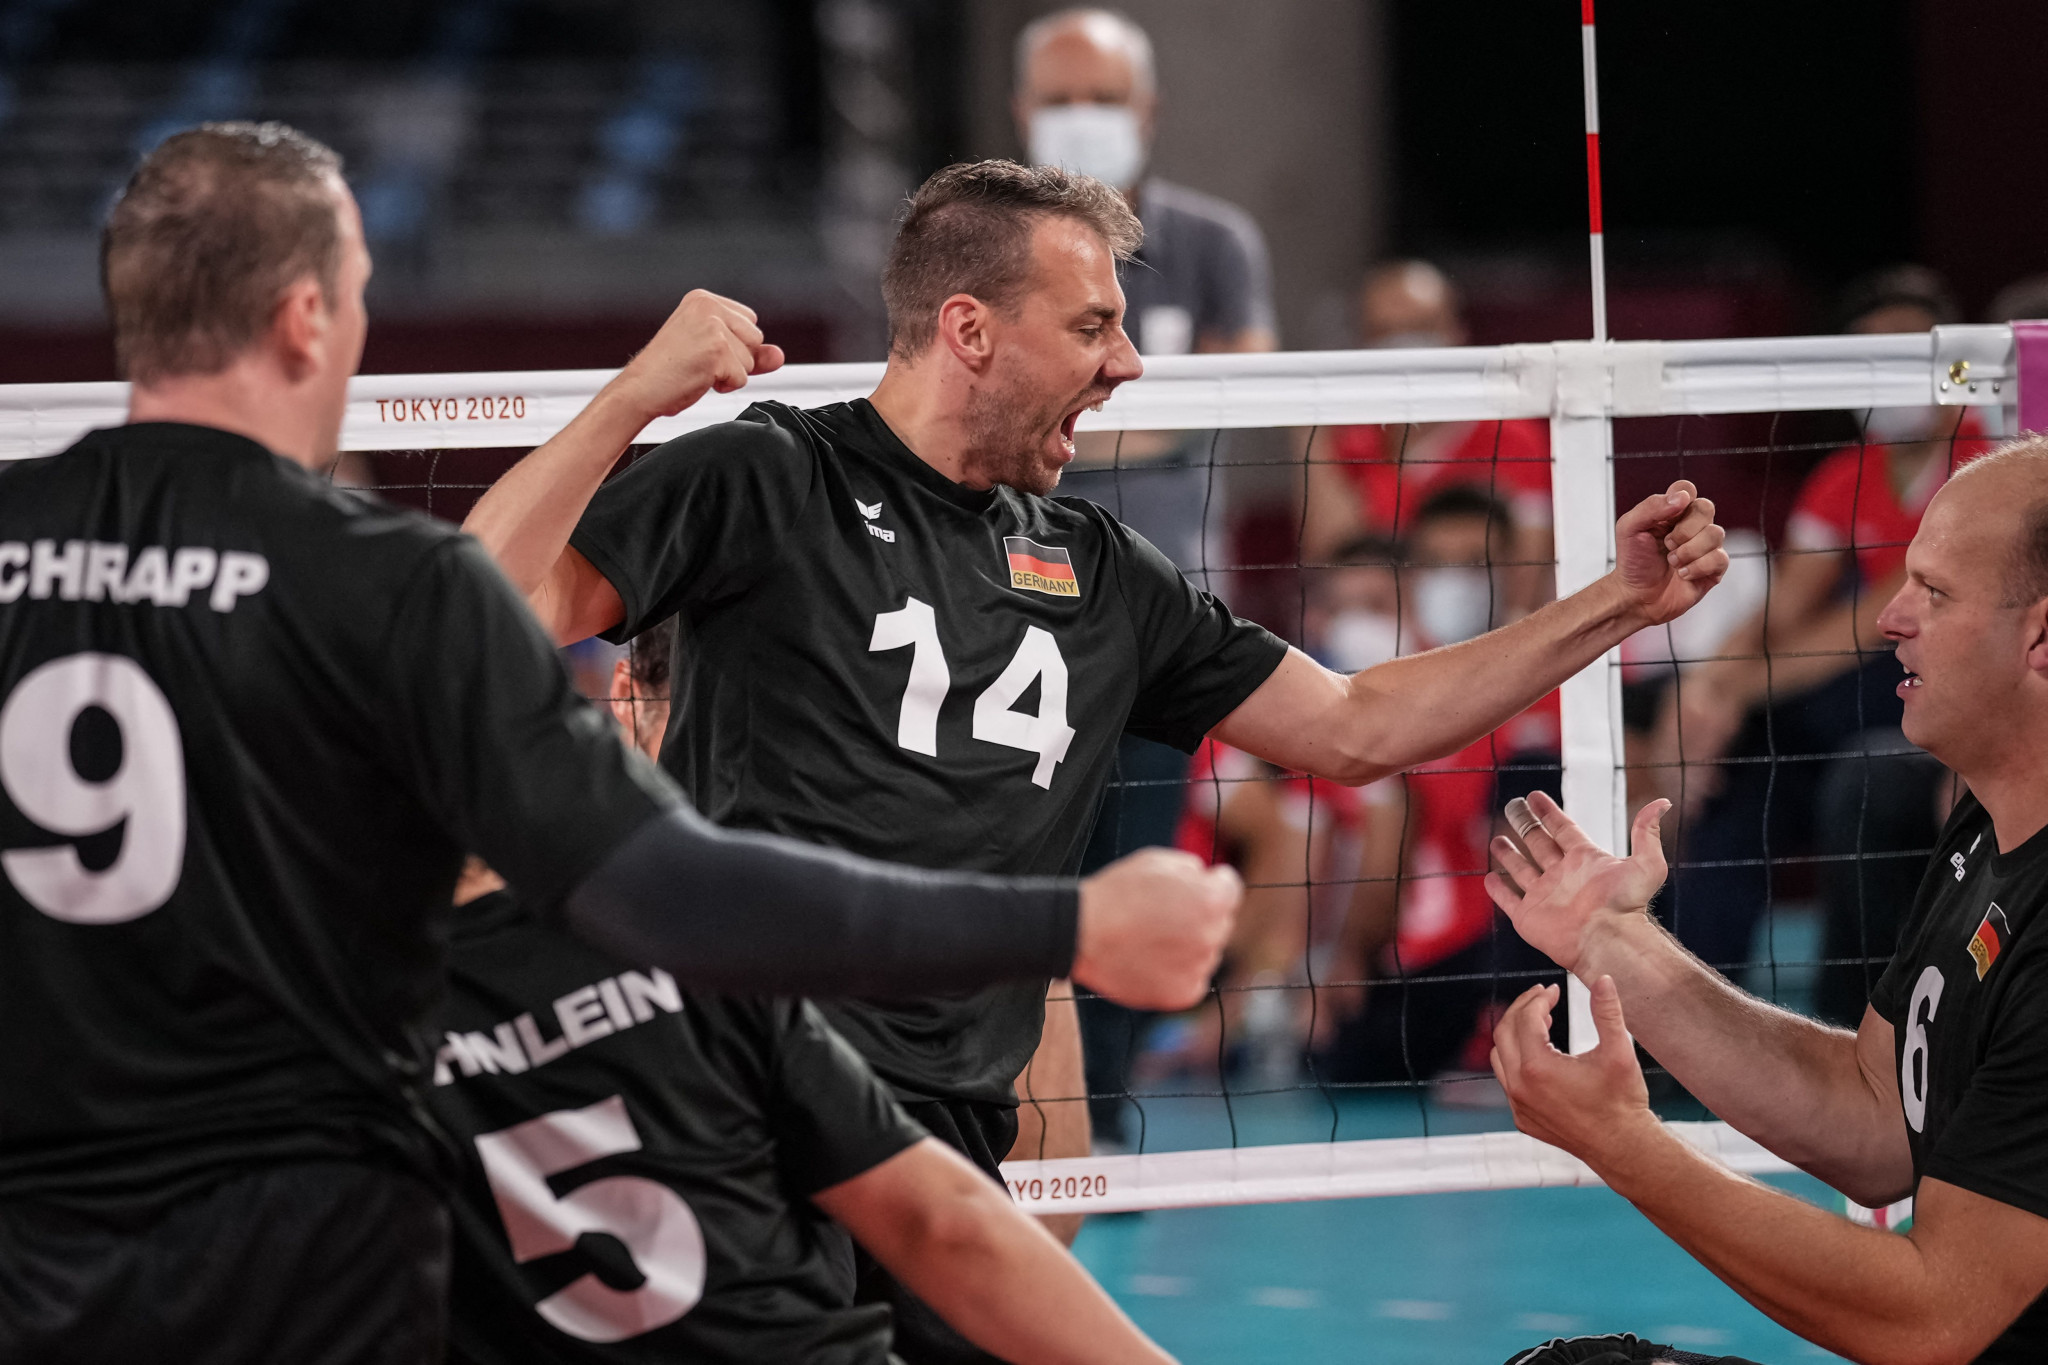 Germany and Russia reach women's and men's semi-finals at European Sitting Volleyball Championships